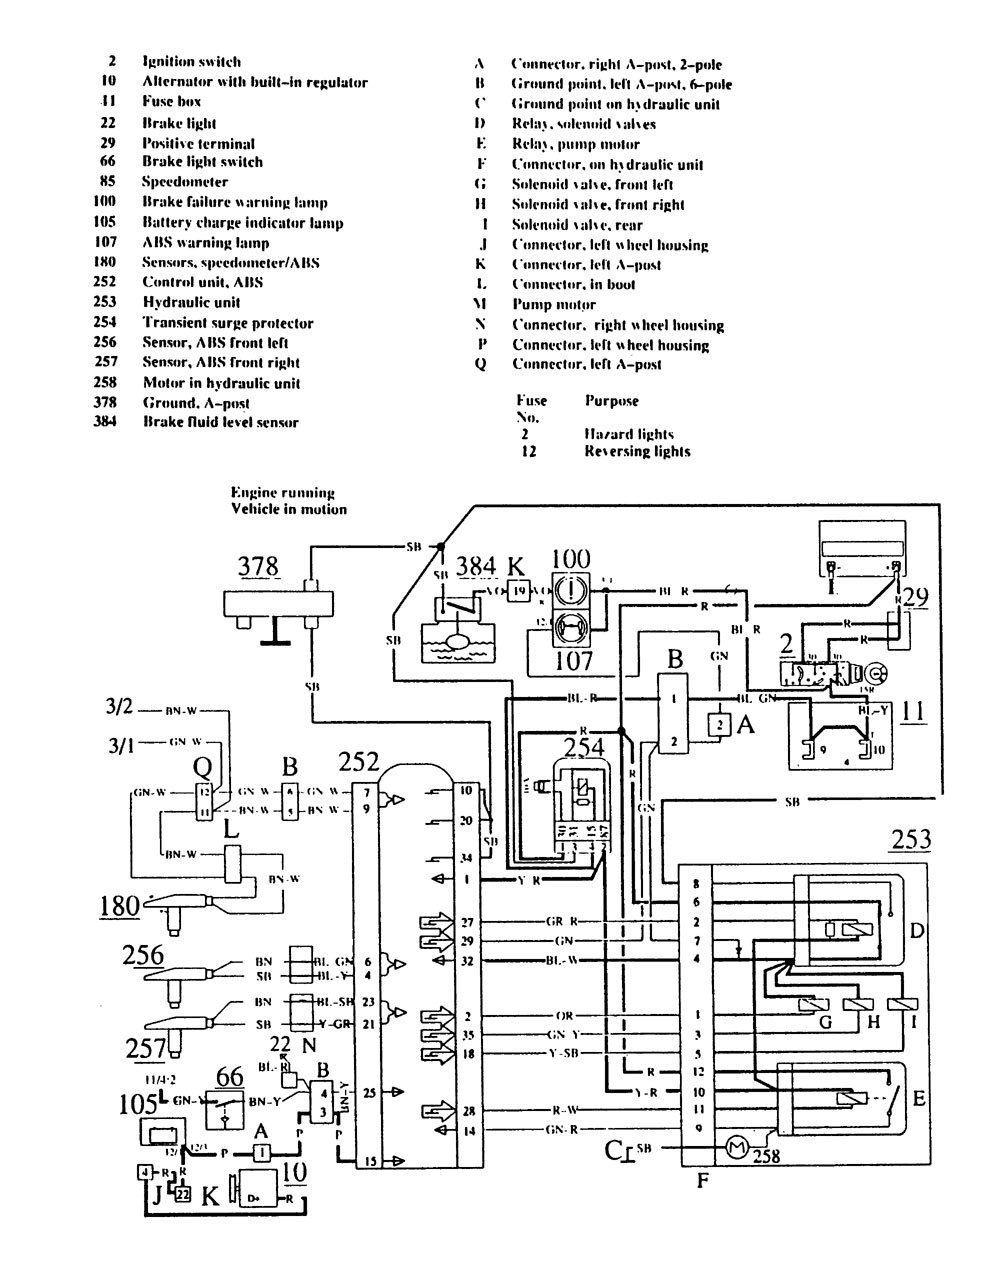 Volvo 240 Ignition Wiring House Wiring Diagram Symbols \u2022 1993 Volvo 240  Radio Wiring Volvo 240 Ignition Coil Wiring Diagram